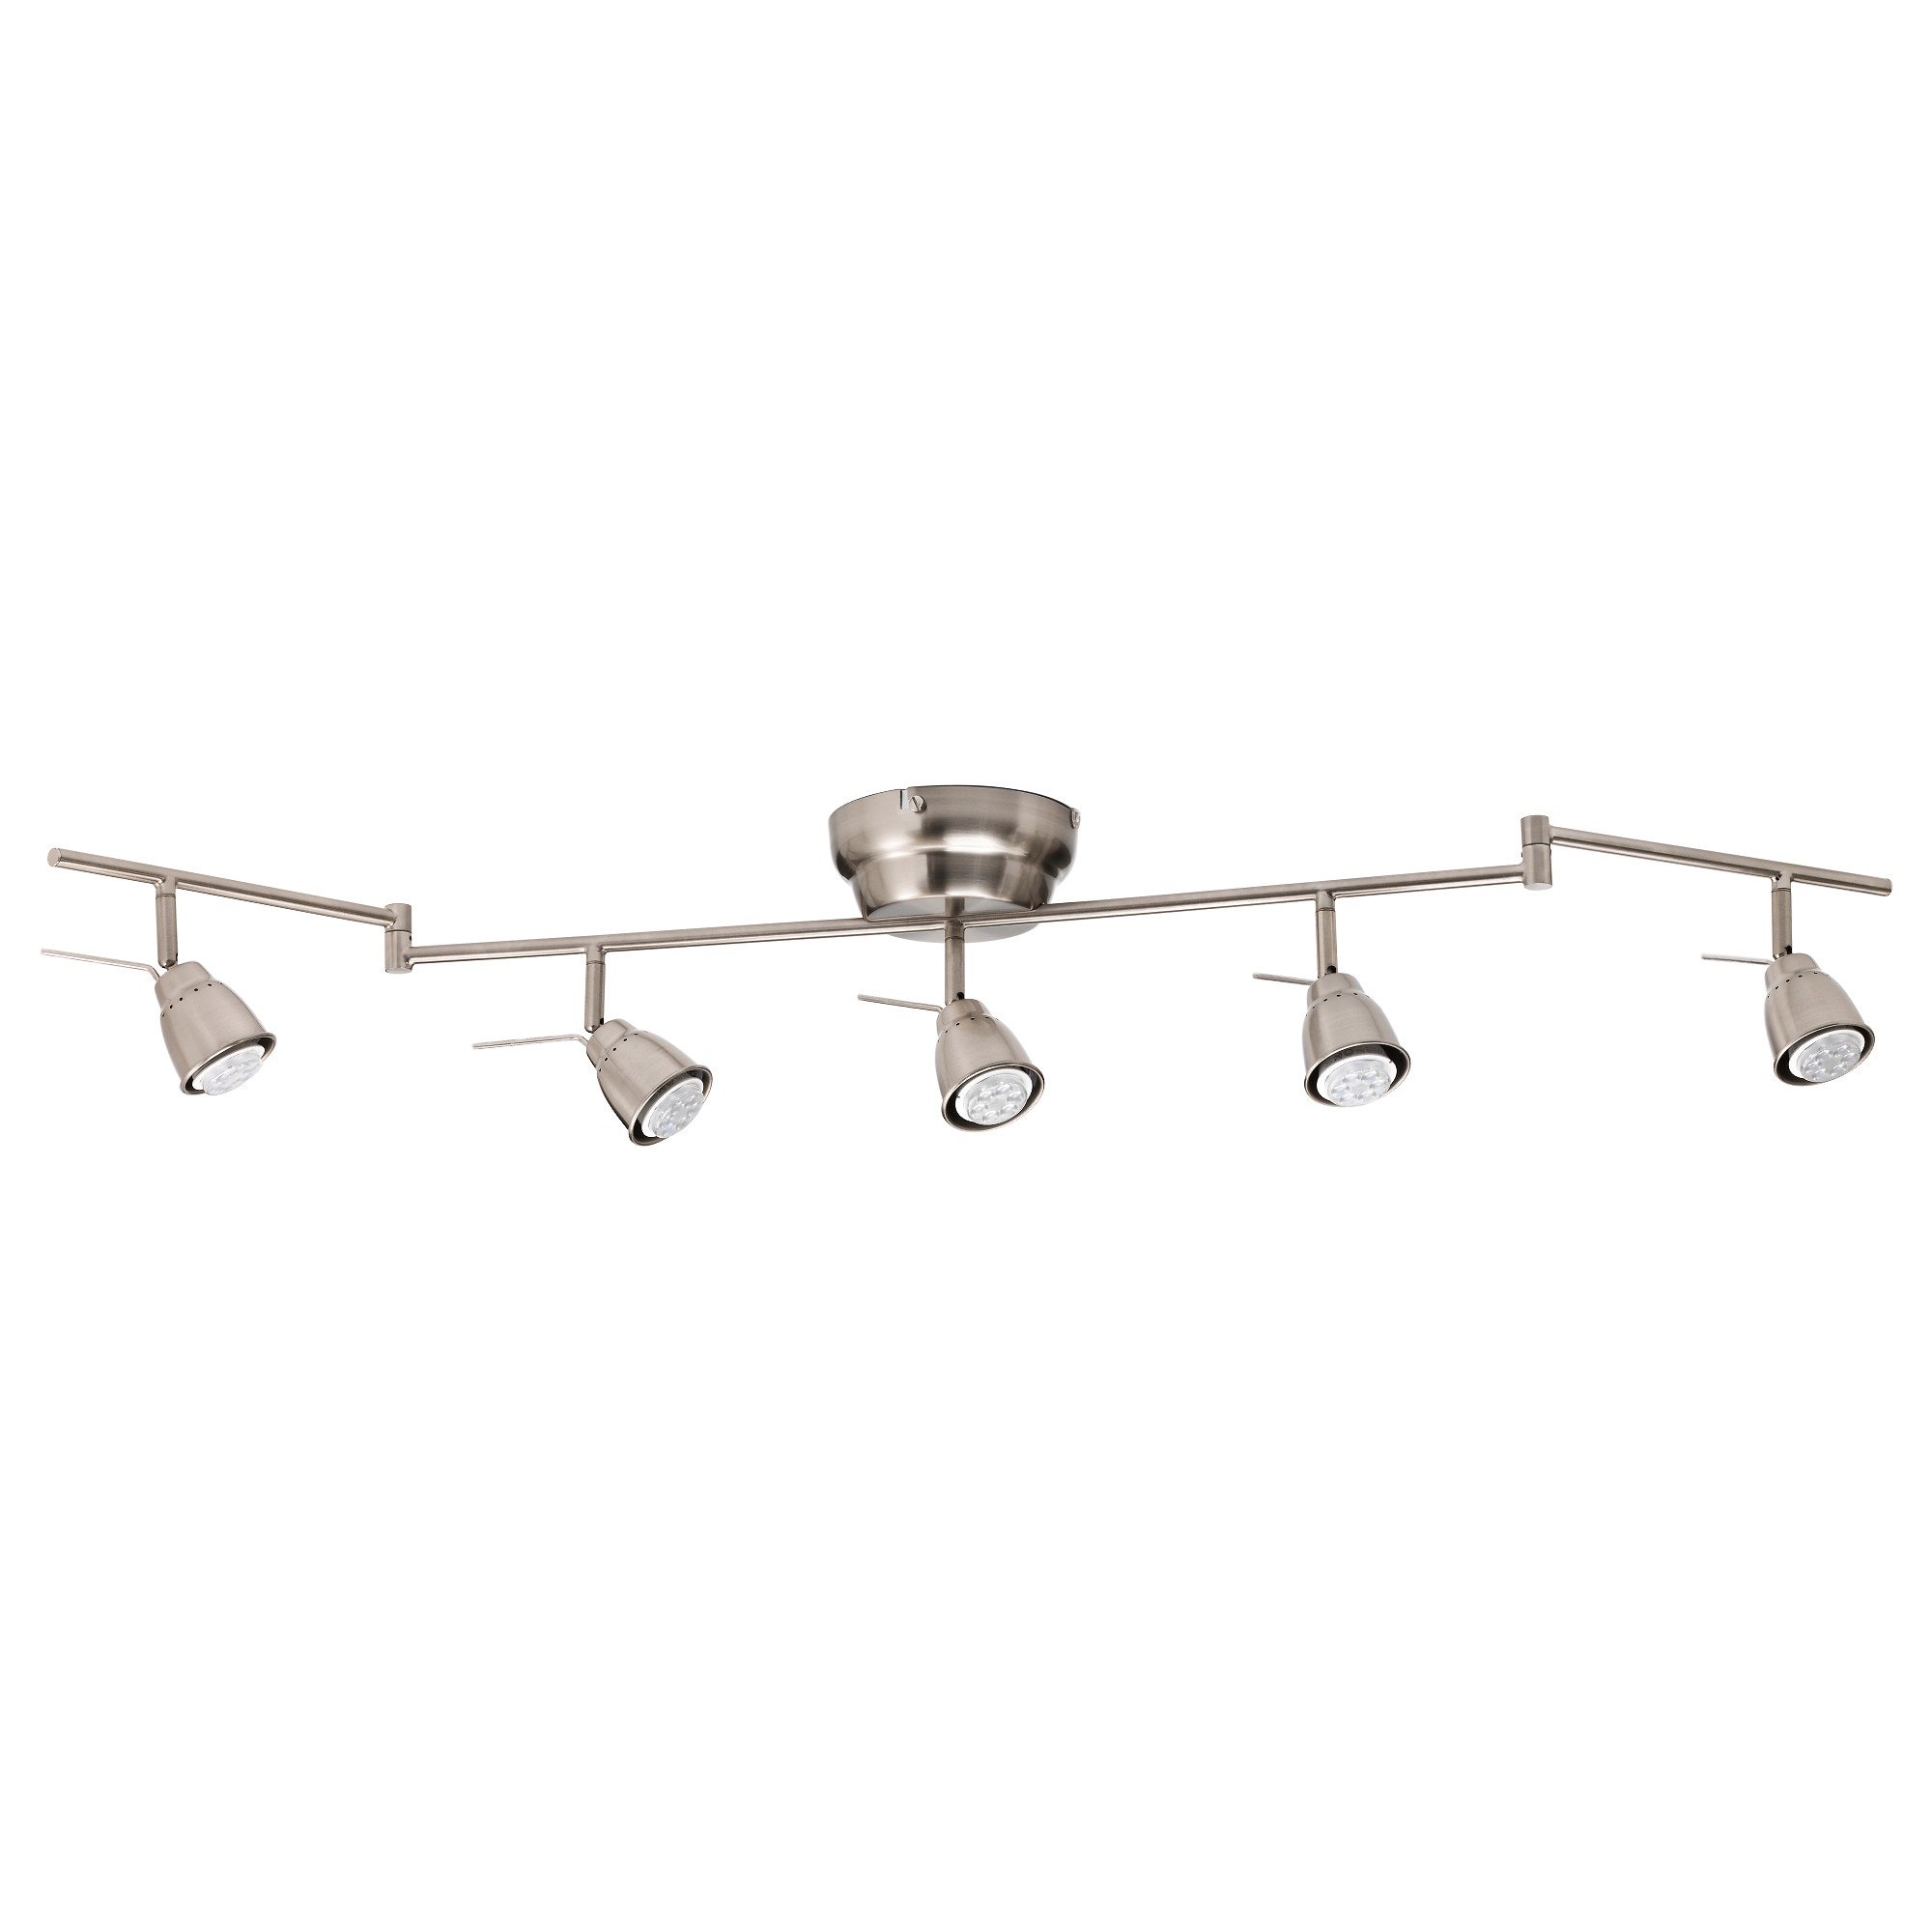 flexible track lighting ikea. Flexible Track Lighting Ikea A